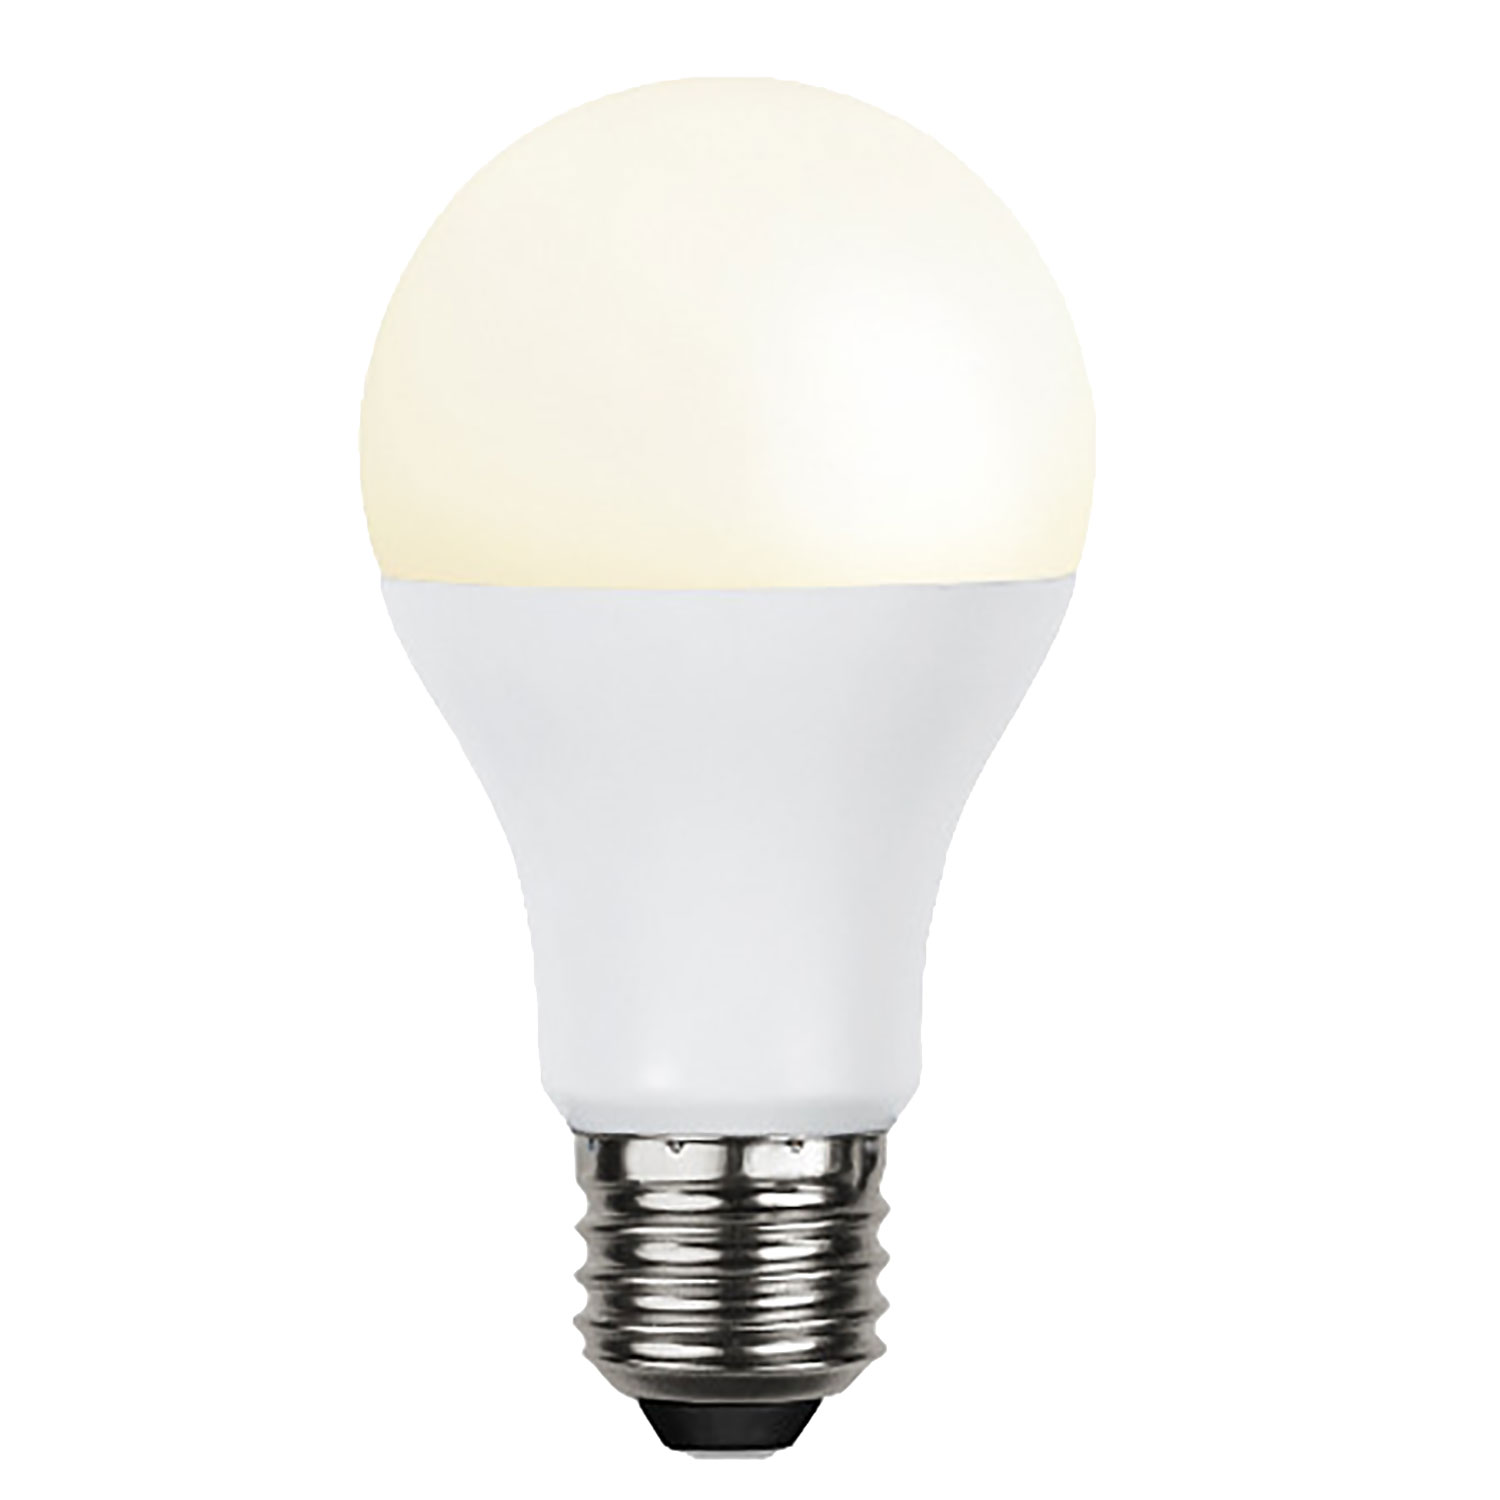 LED-lampa E27 A60 opaque Ra90, white